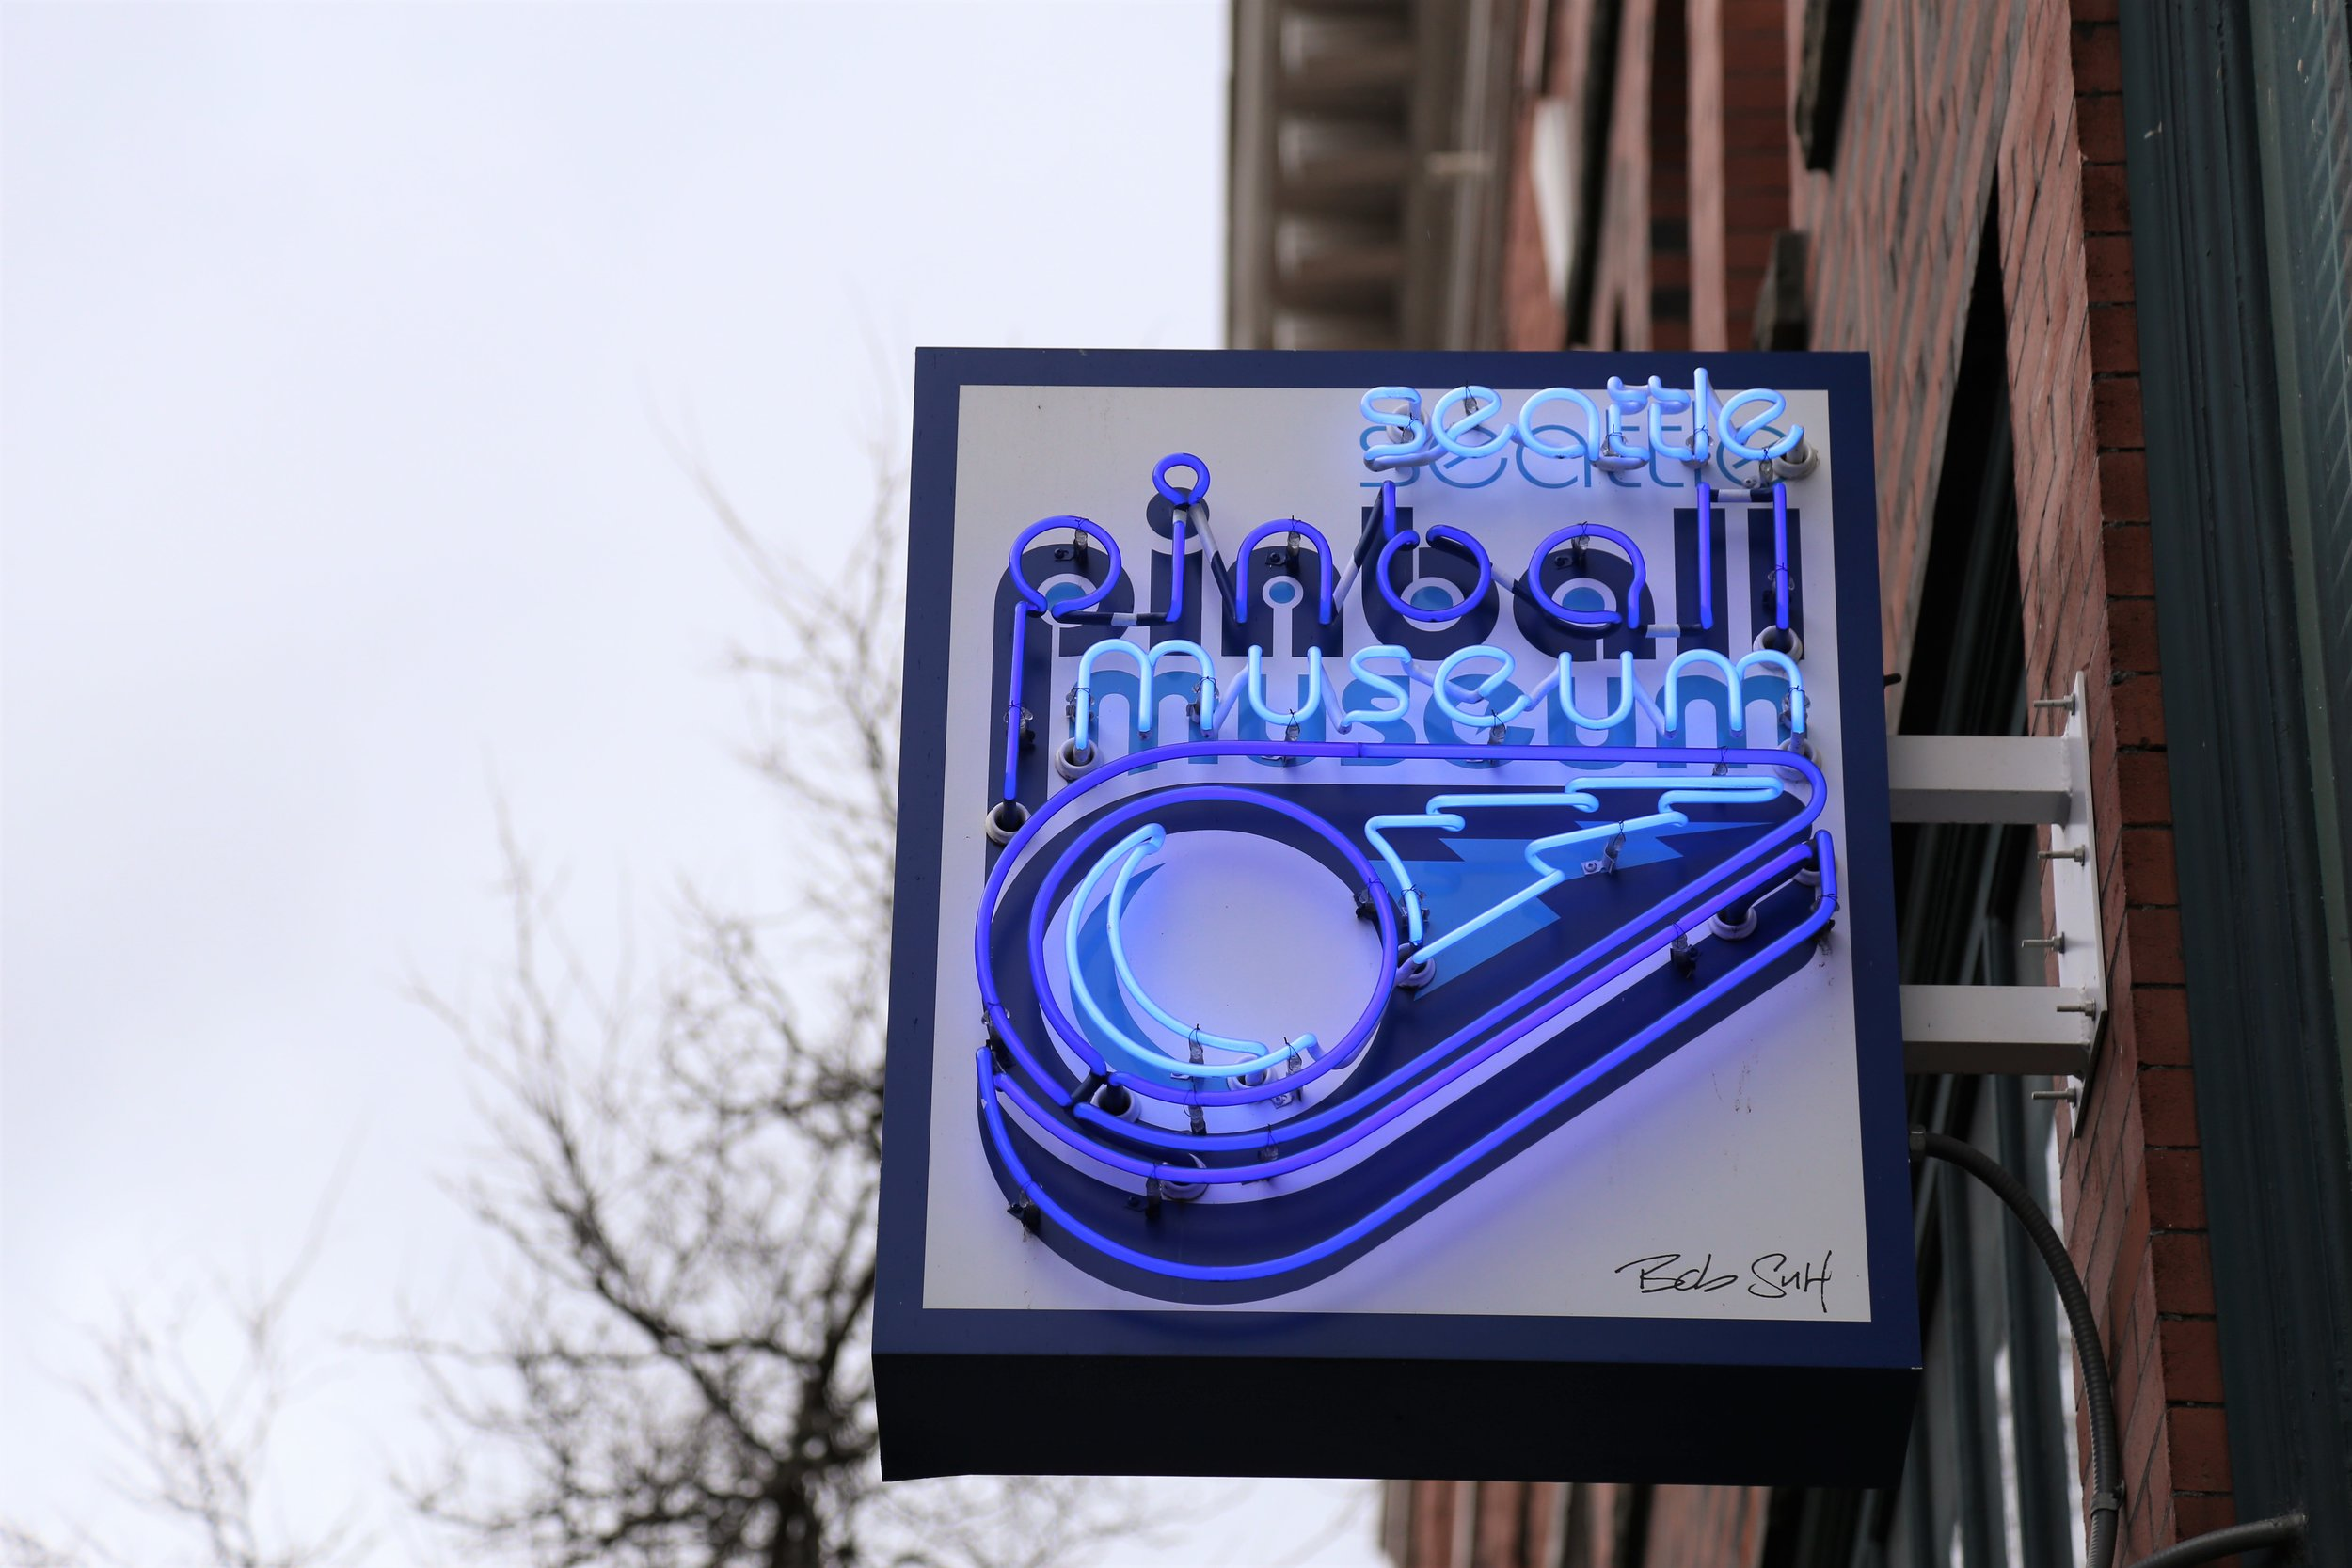 Seattle's Pinball Museum